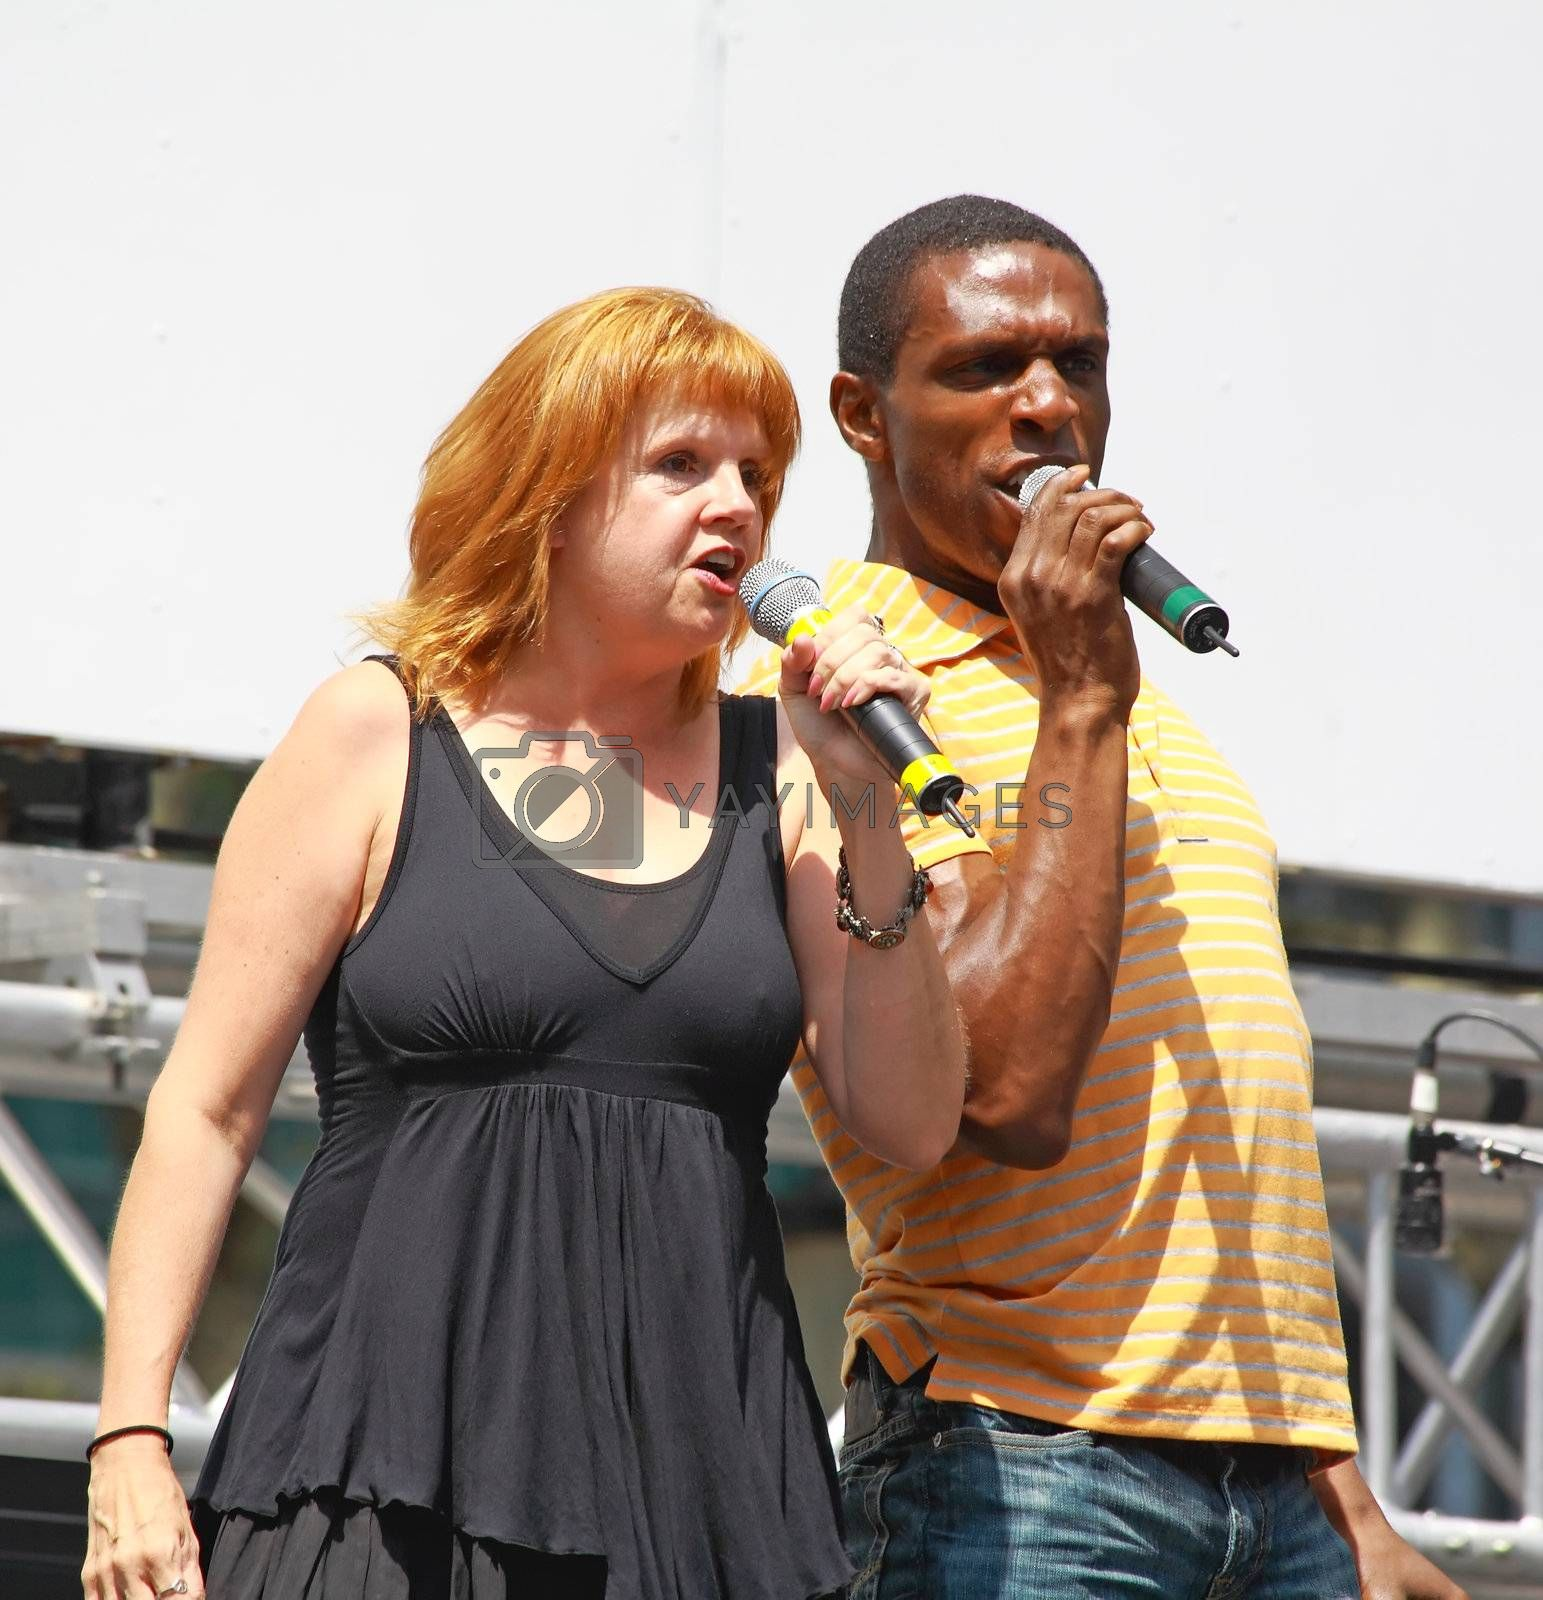 NEW YORK - AUGUST 7: Annie Golden and Andre Ward performed Xanadu at The Broadway in Bryant Park in NYC - a free public event on August 7, 2008